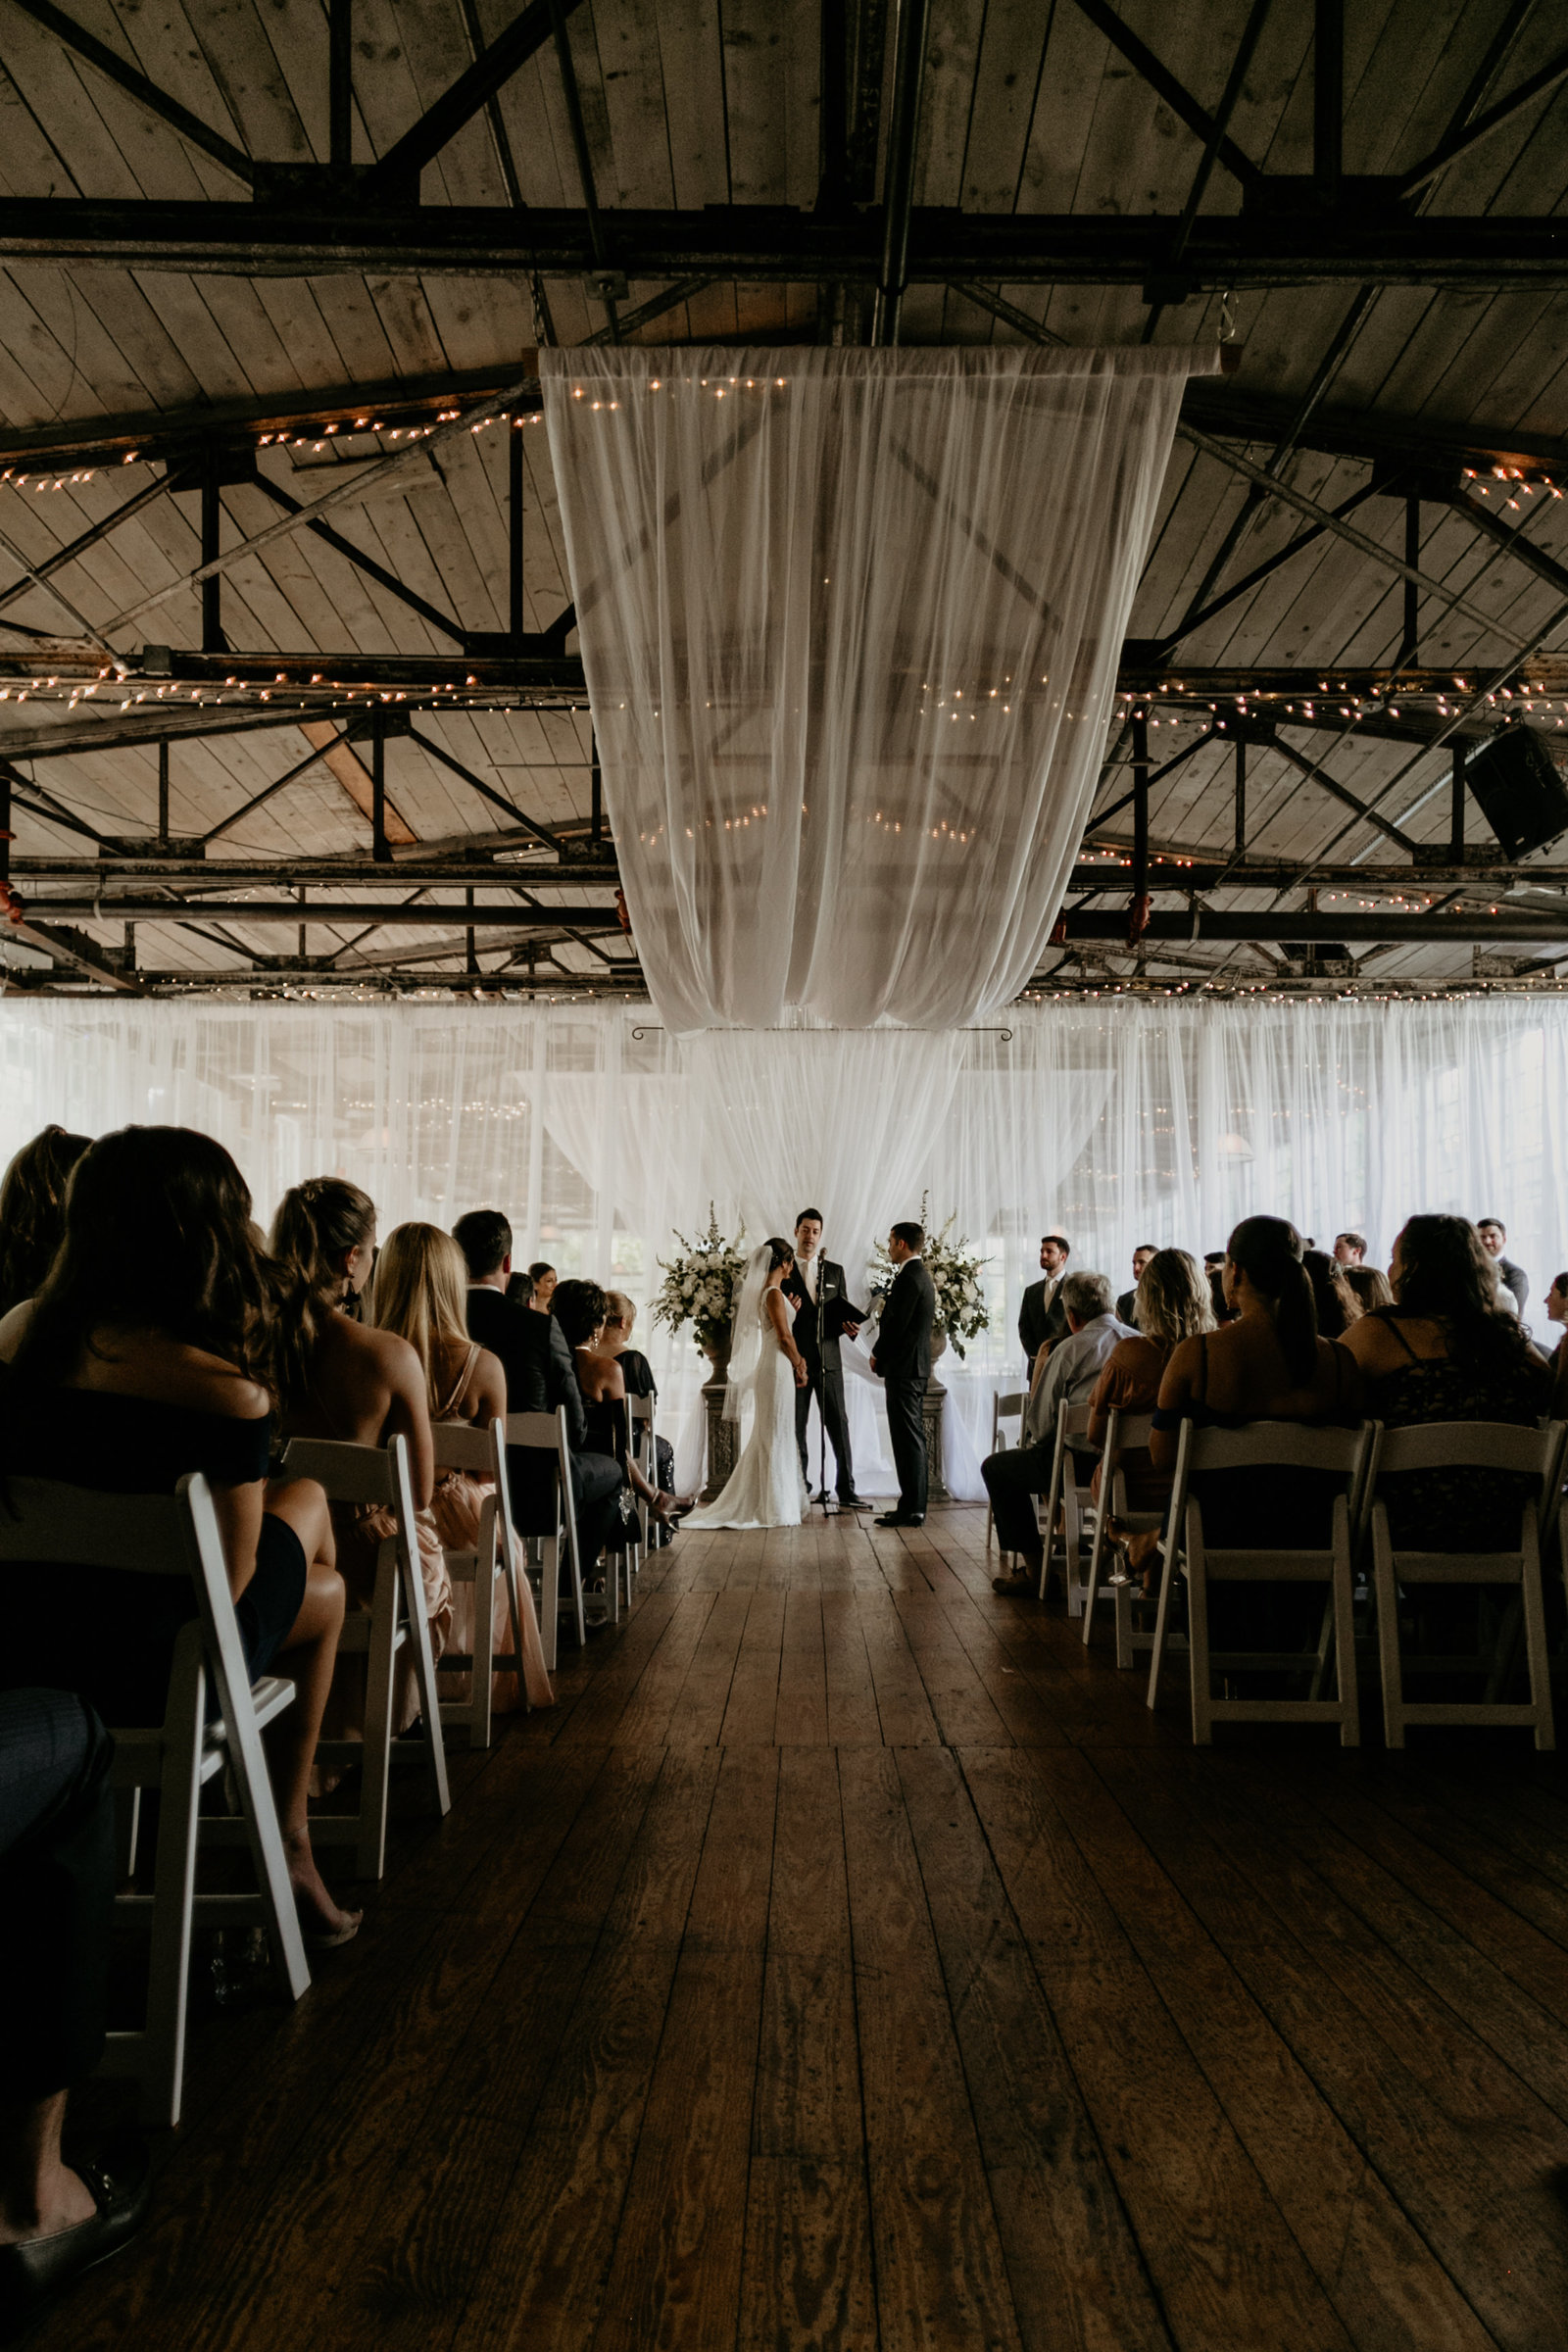 Wedding ceremony at the lace factory in deep river, connecticut.